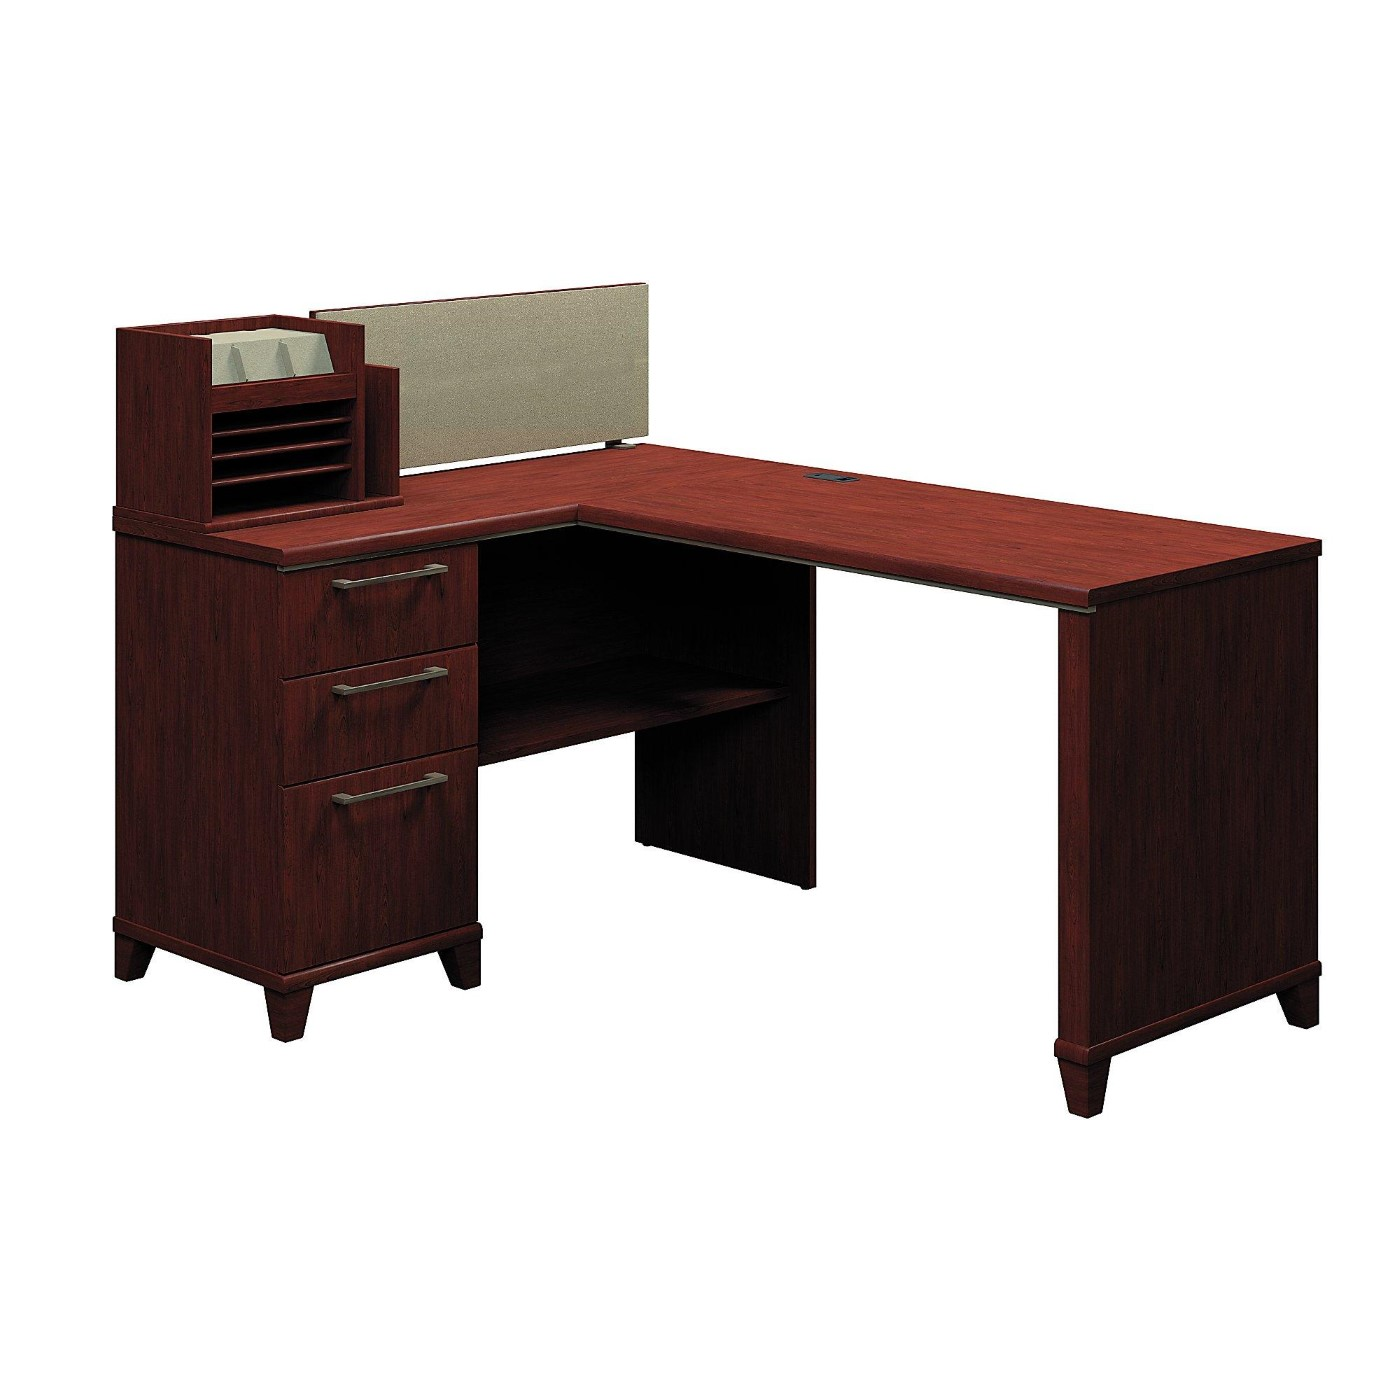 <font color=#c60><b>BUSH BUSINESS FURNITURE ENTERPRISE 60W X 47D CORNER DESK. FREE SHIPPING</font></b></font></b>